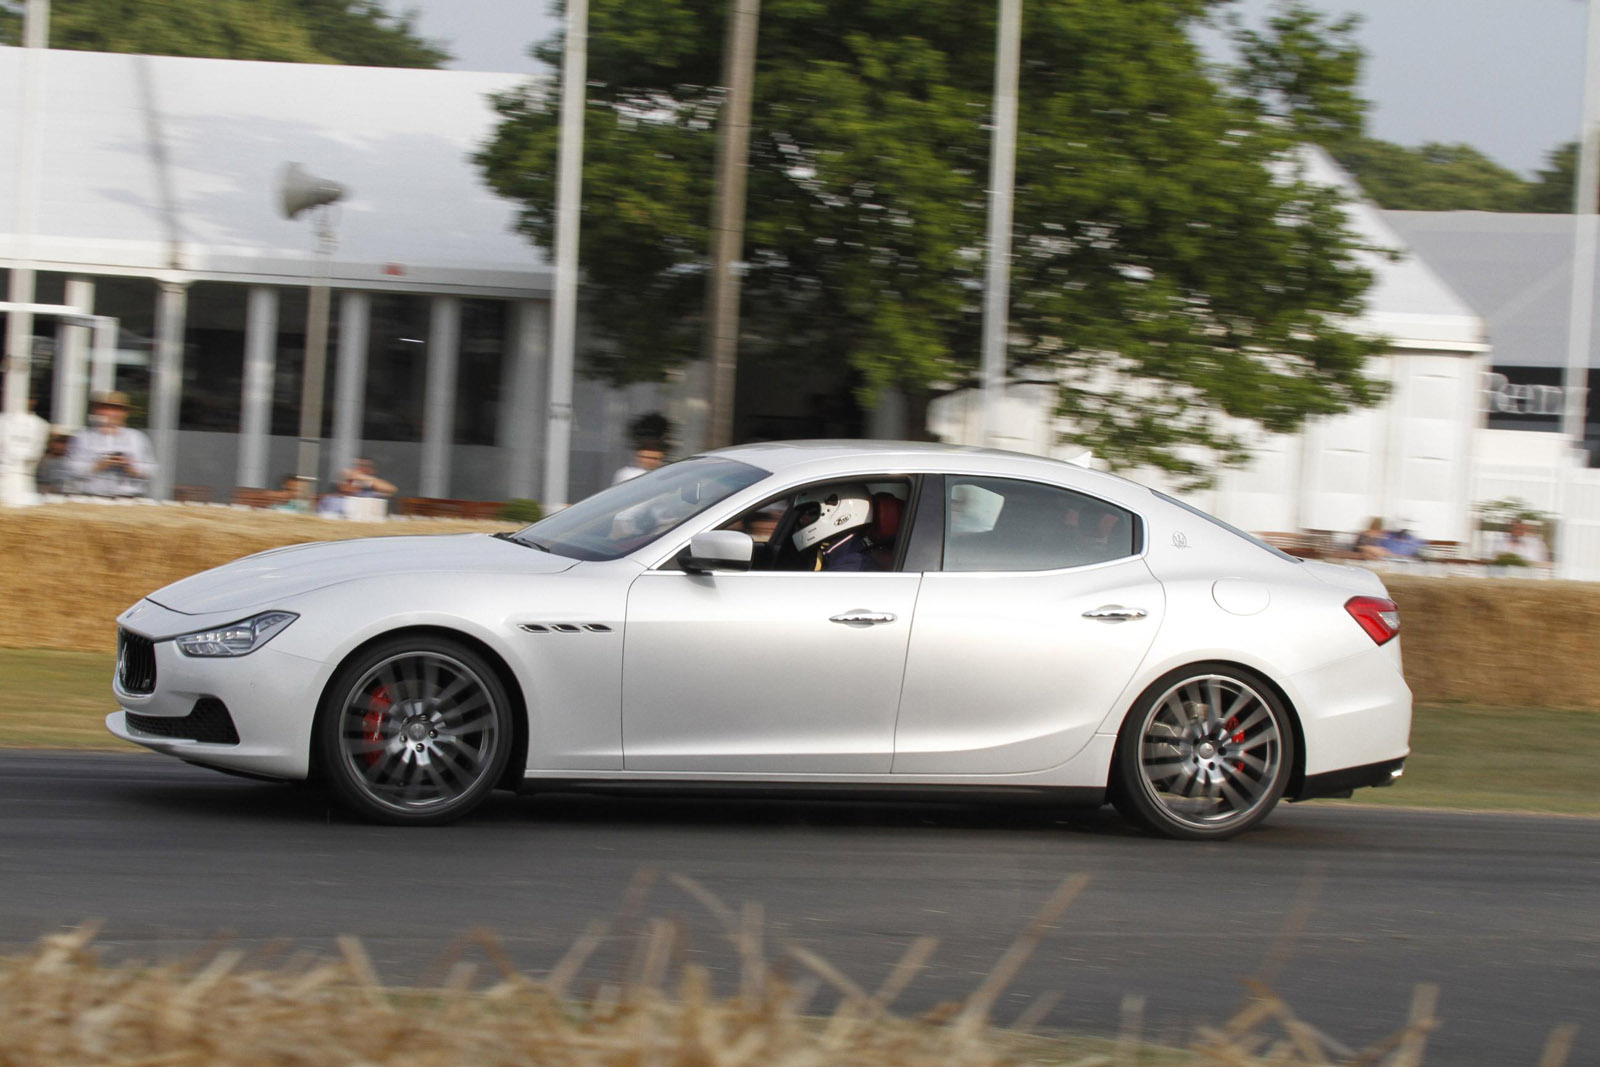 Maserati Ghibli at Goodwood Festival of Speed